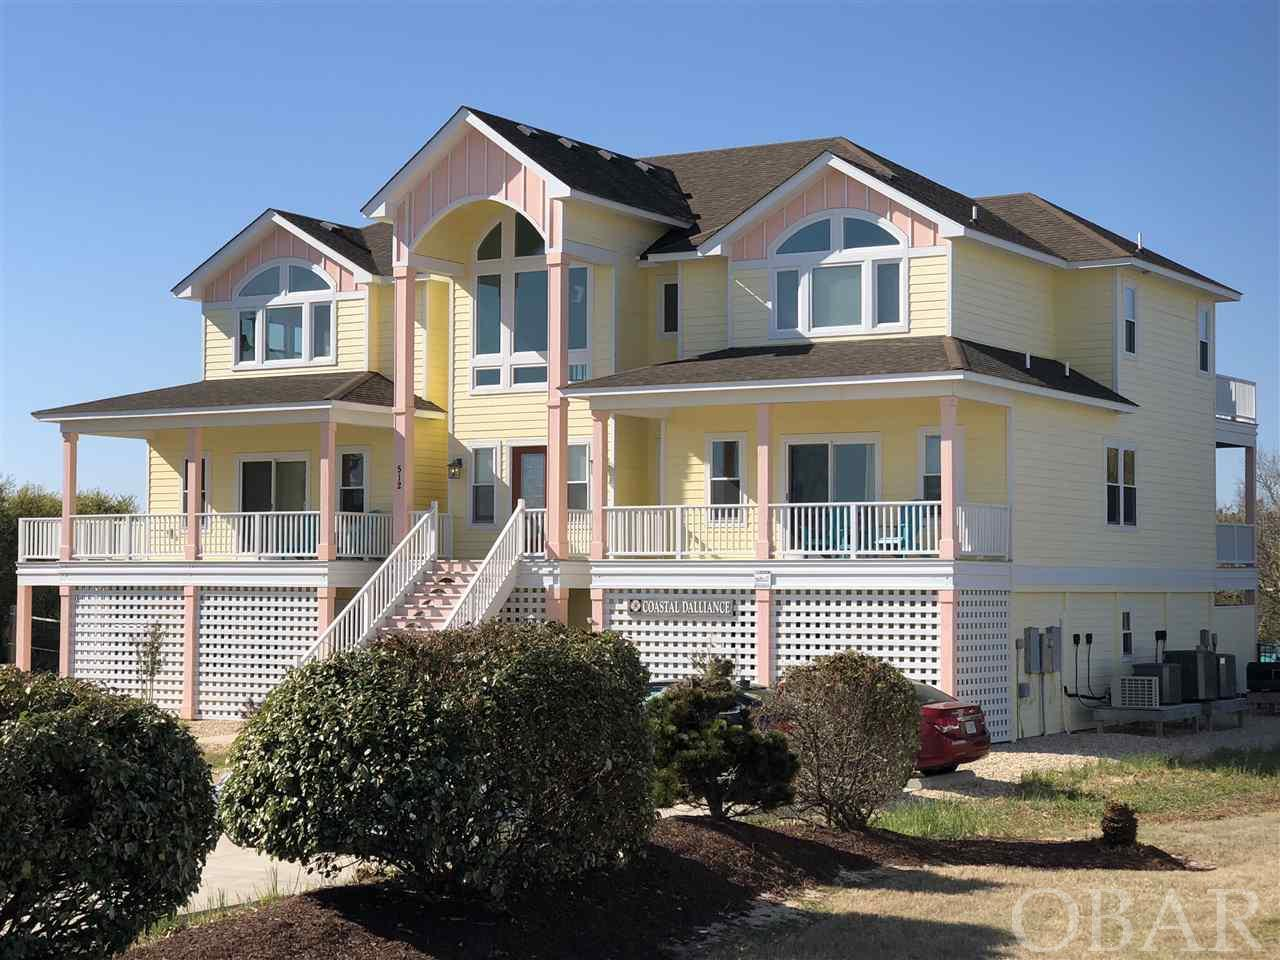 512 Breakers Arch, Corolla, NC 27927, 10 Bedrooms Bedrooms, ,10 BathroomsBathrooms,Residential,For sale,Breakers Arch,100206